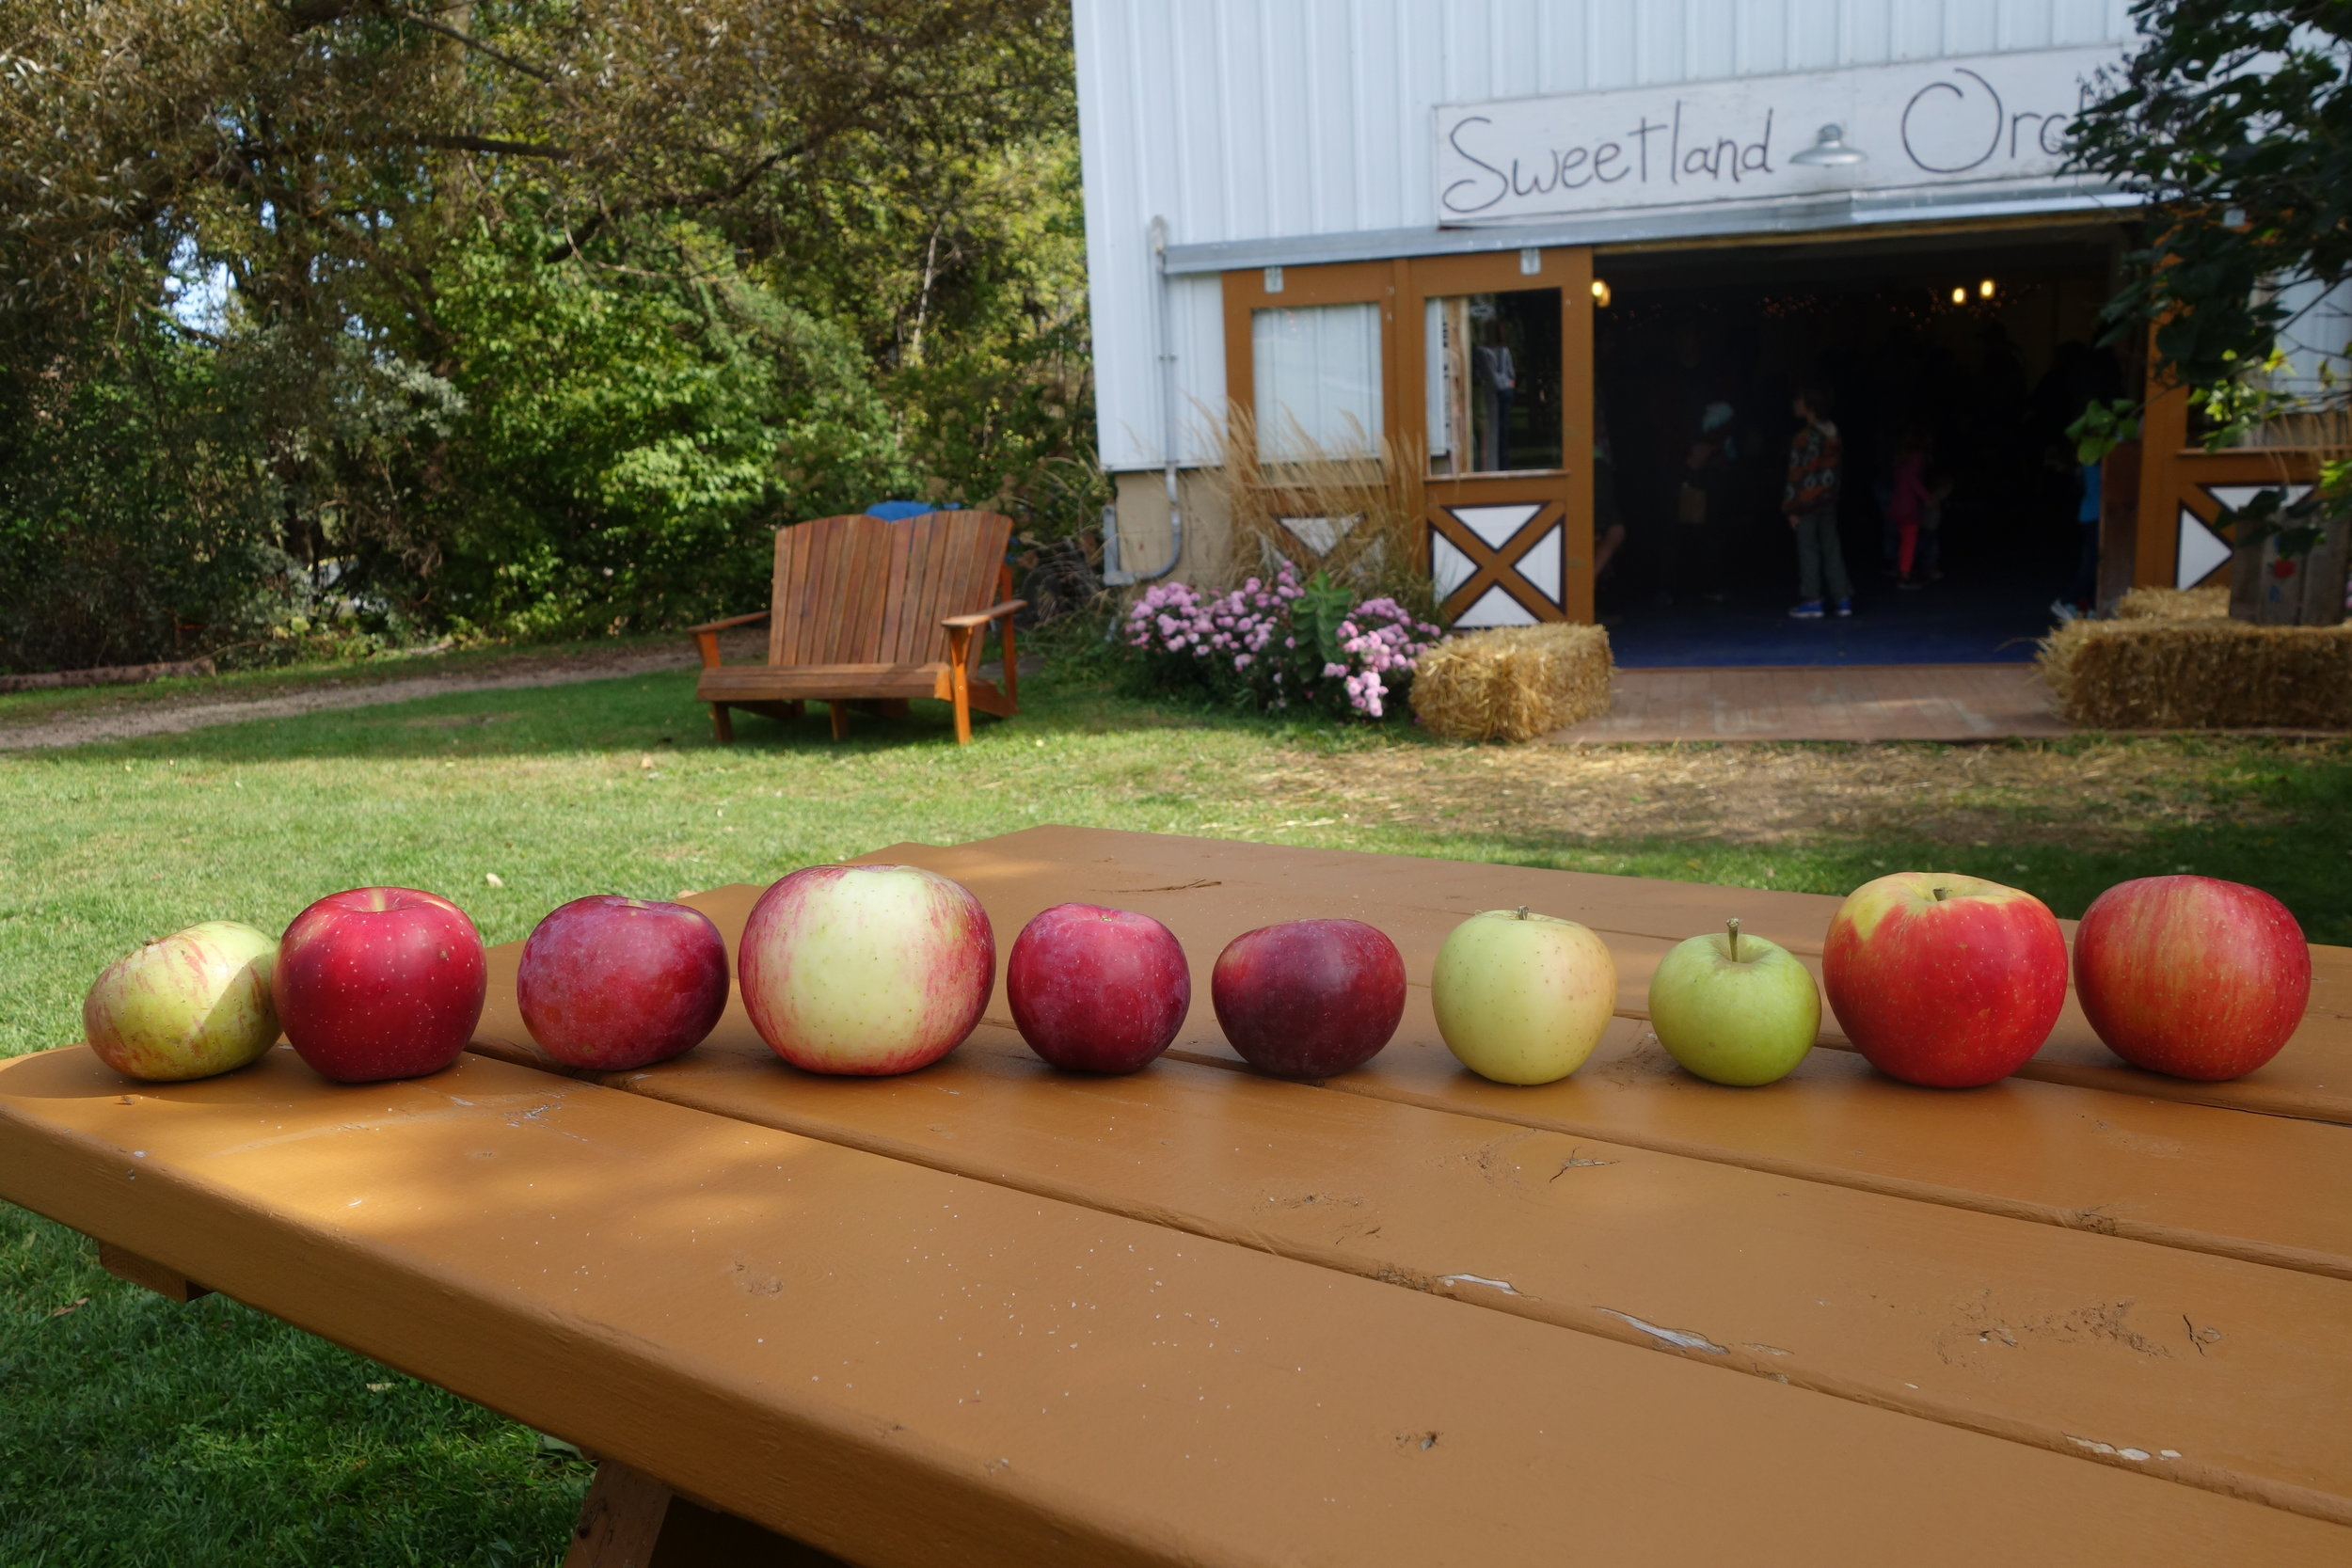 From left:Hibernal, Haralson, McIntosh (though we sold out of this yesterday), Wolf River, Spartan, Liberty, Honeygold, Shamrock, Honeycrisp, and Sweet Sixteen.